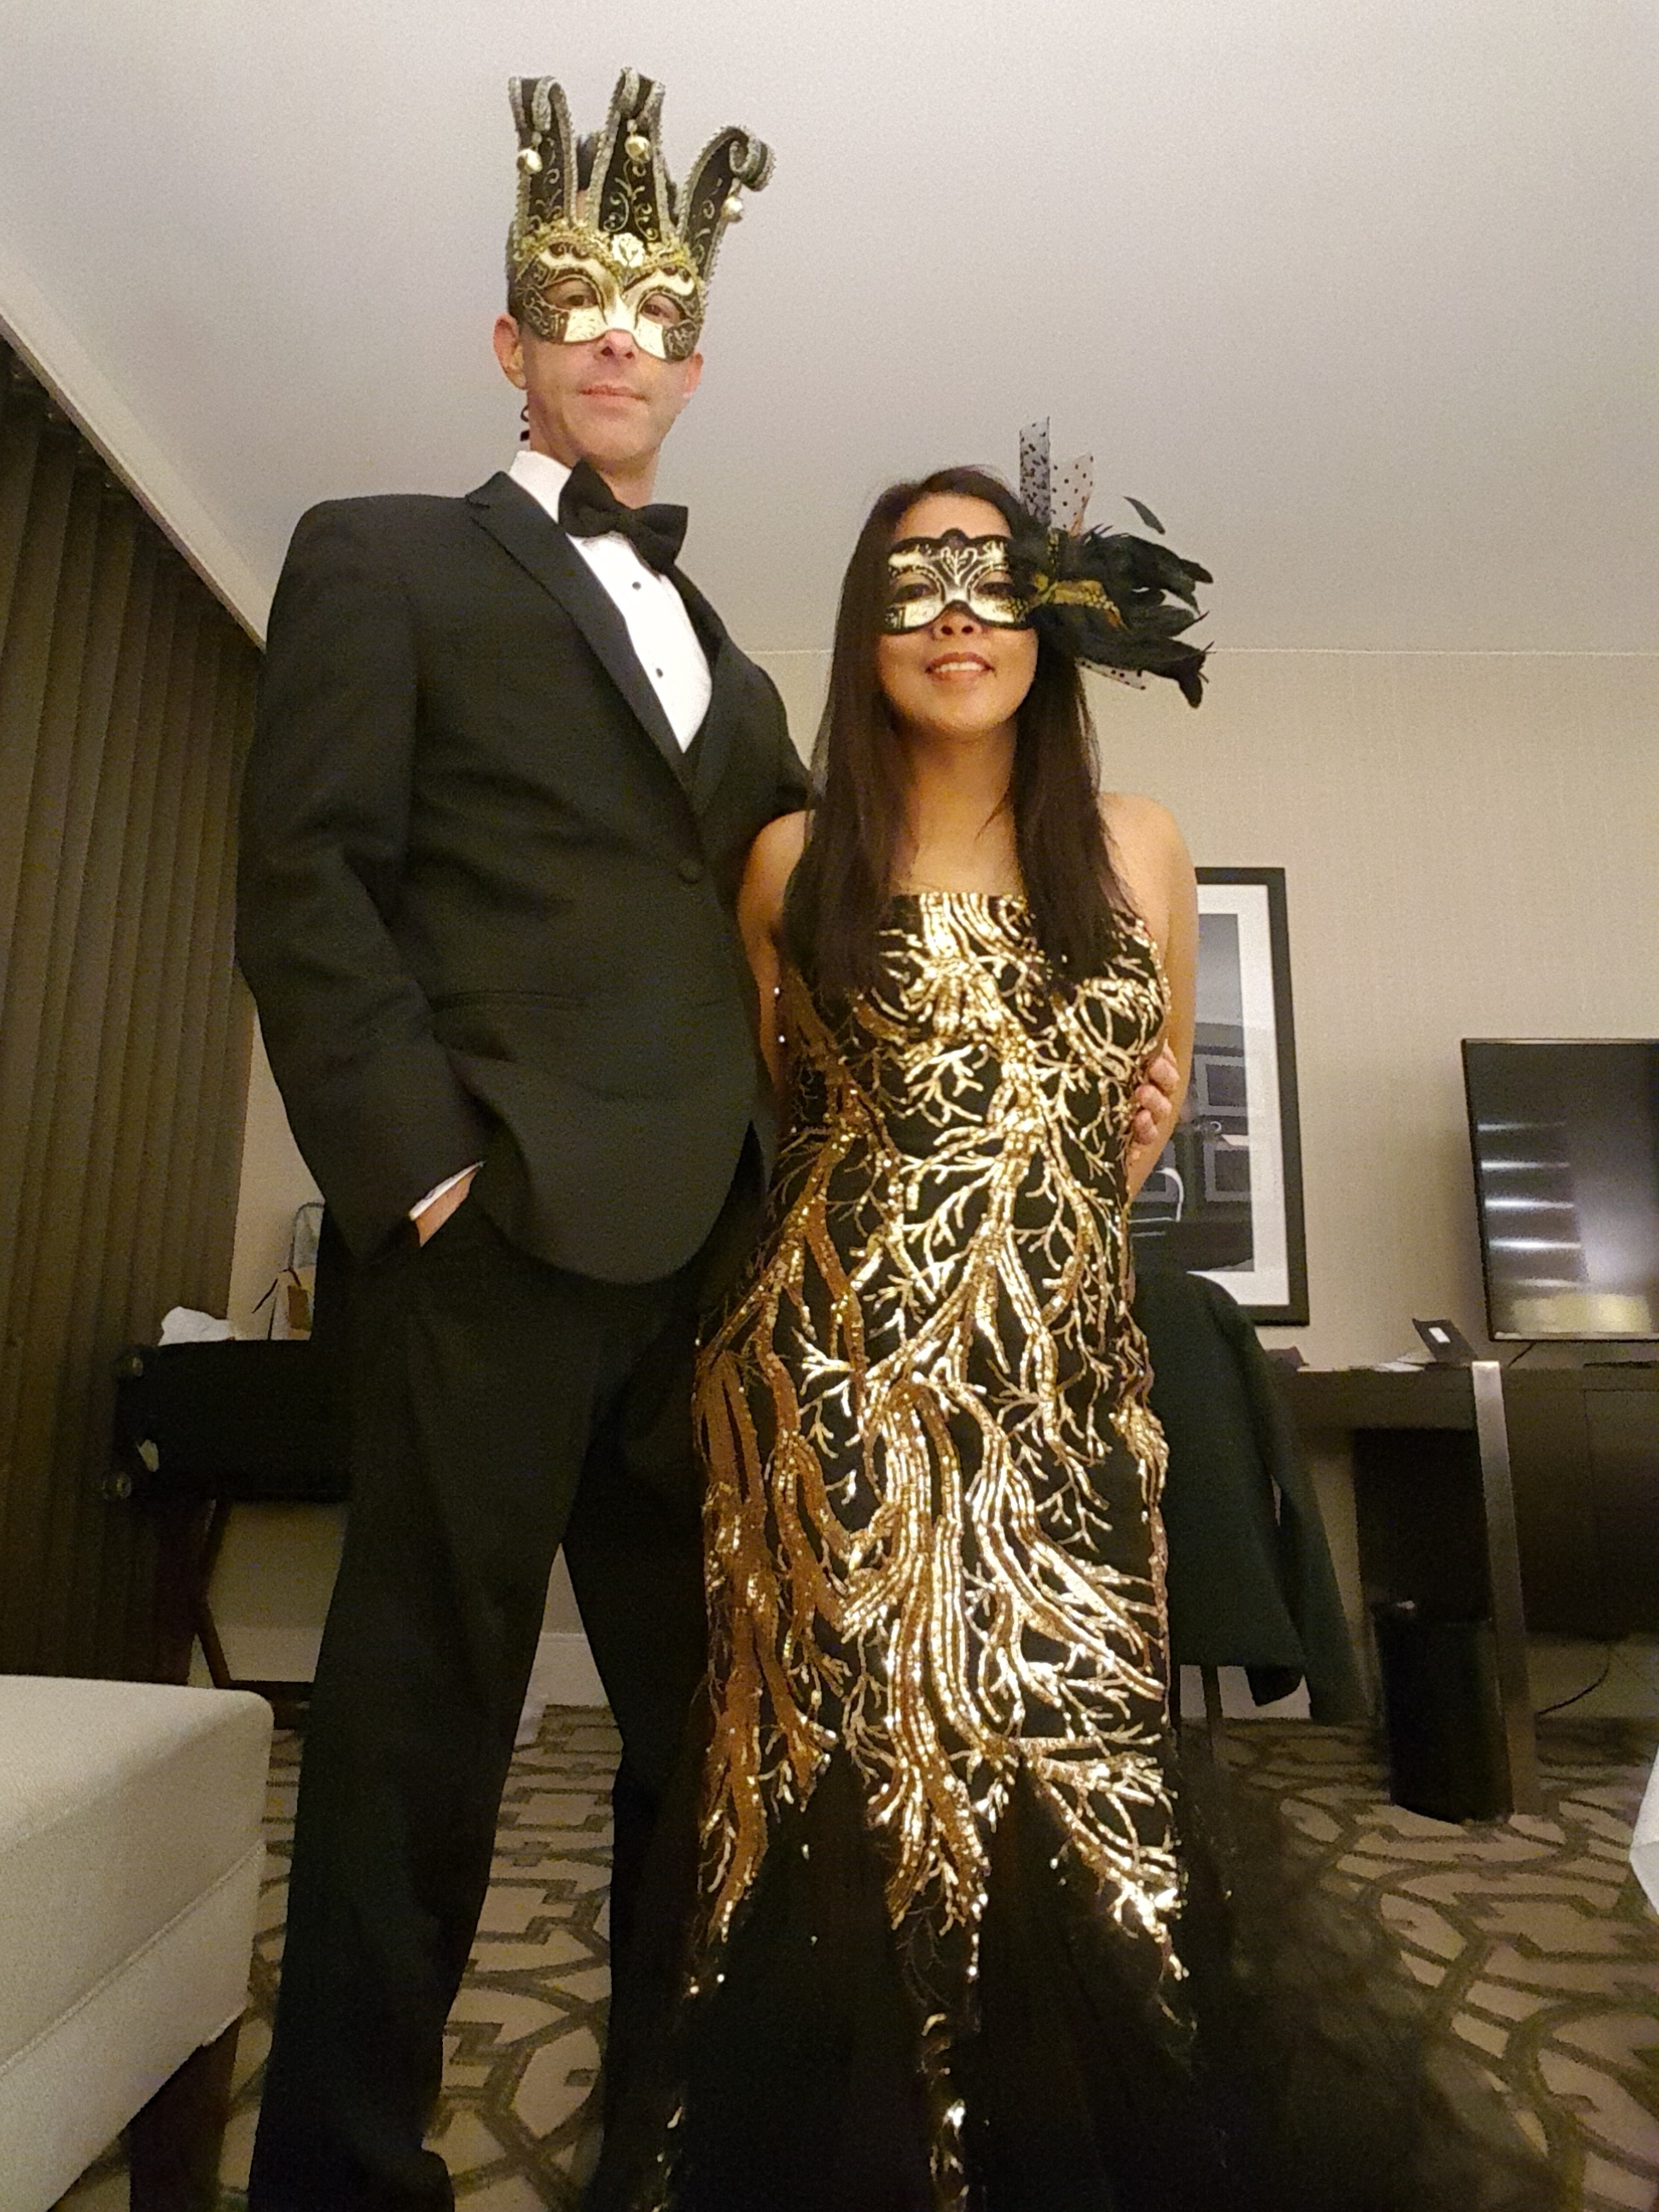 All dressed up for a masquerade!